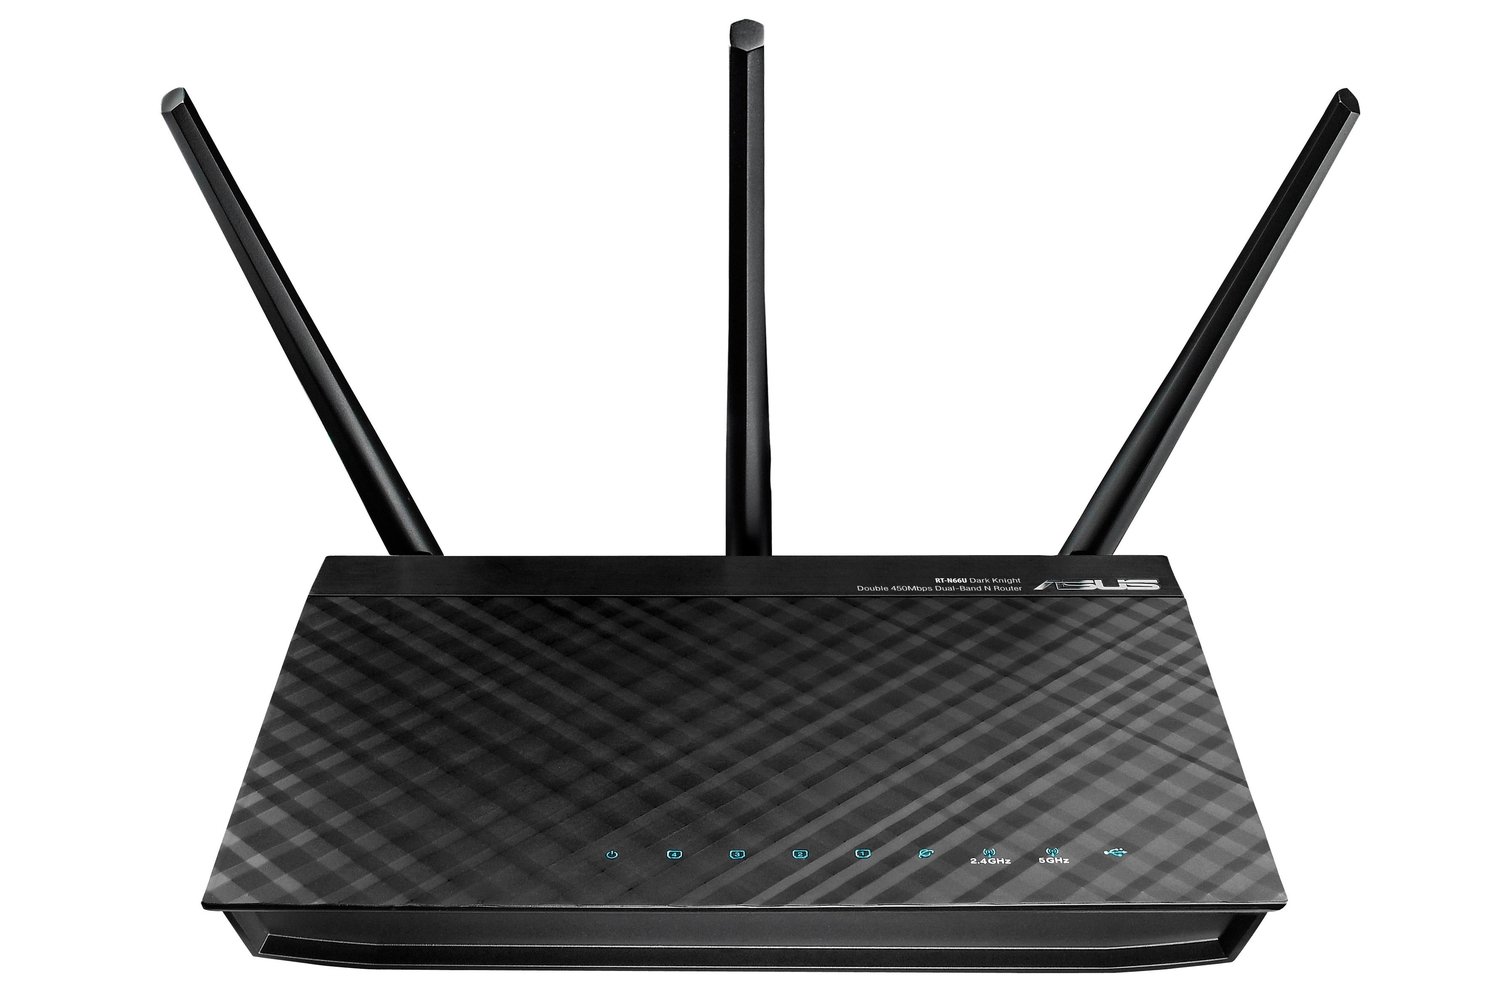 ASUS RT-N66U Review: This wireless router will handle anything you ...